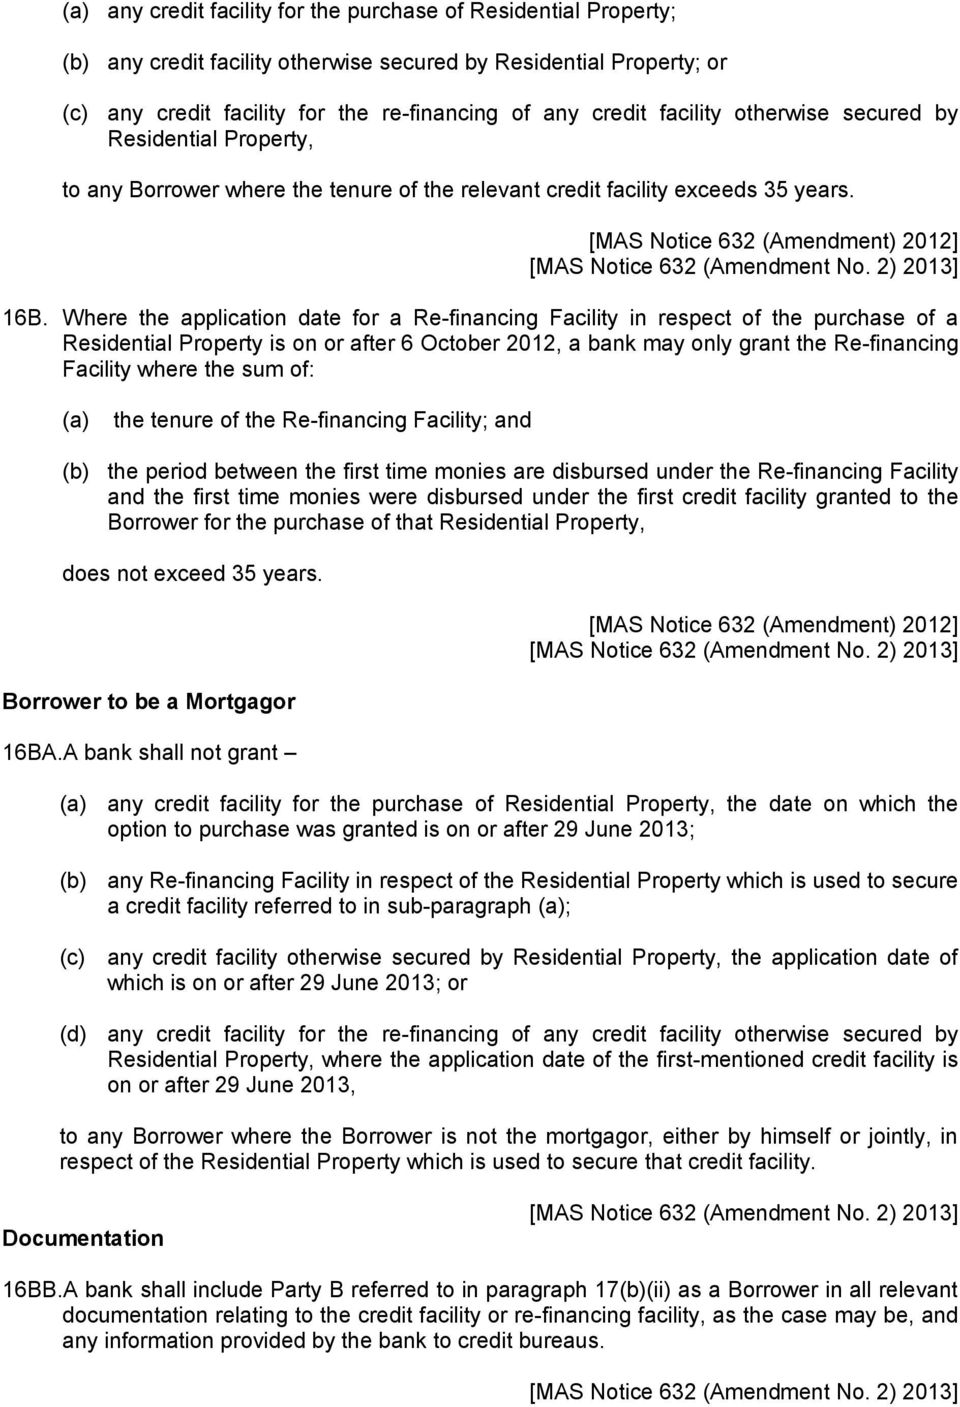 Where the application date for a Re-financing Facility in respect of the purchase of a Residential Property is on or after 6 October 2012, a bank may only grant the Re-financing Facility where the